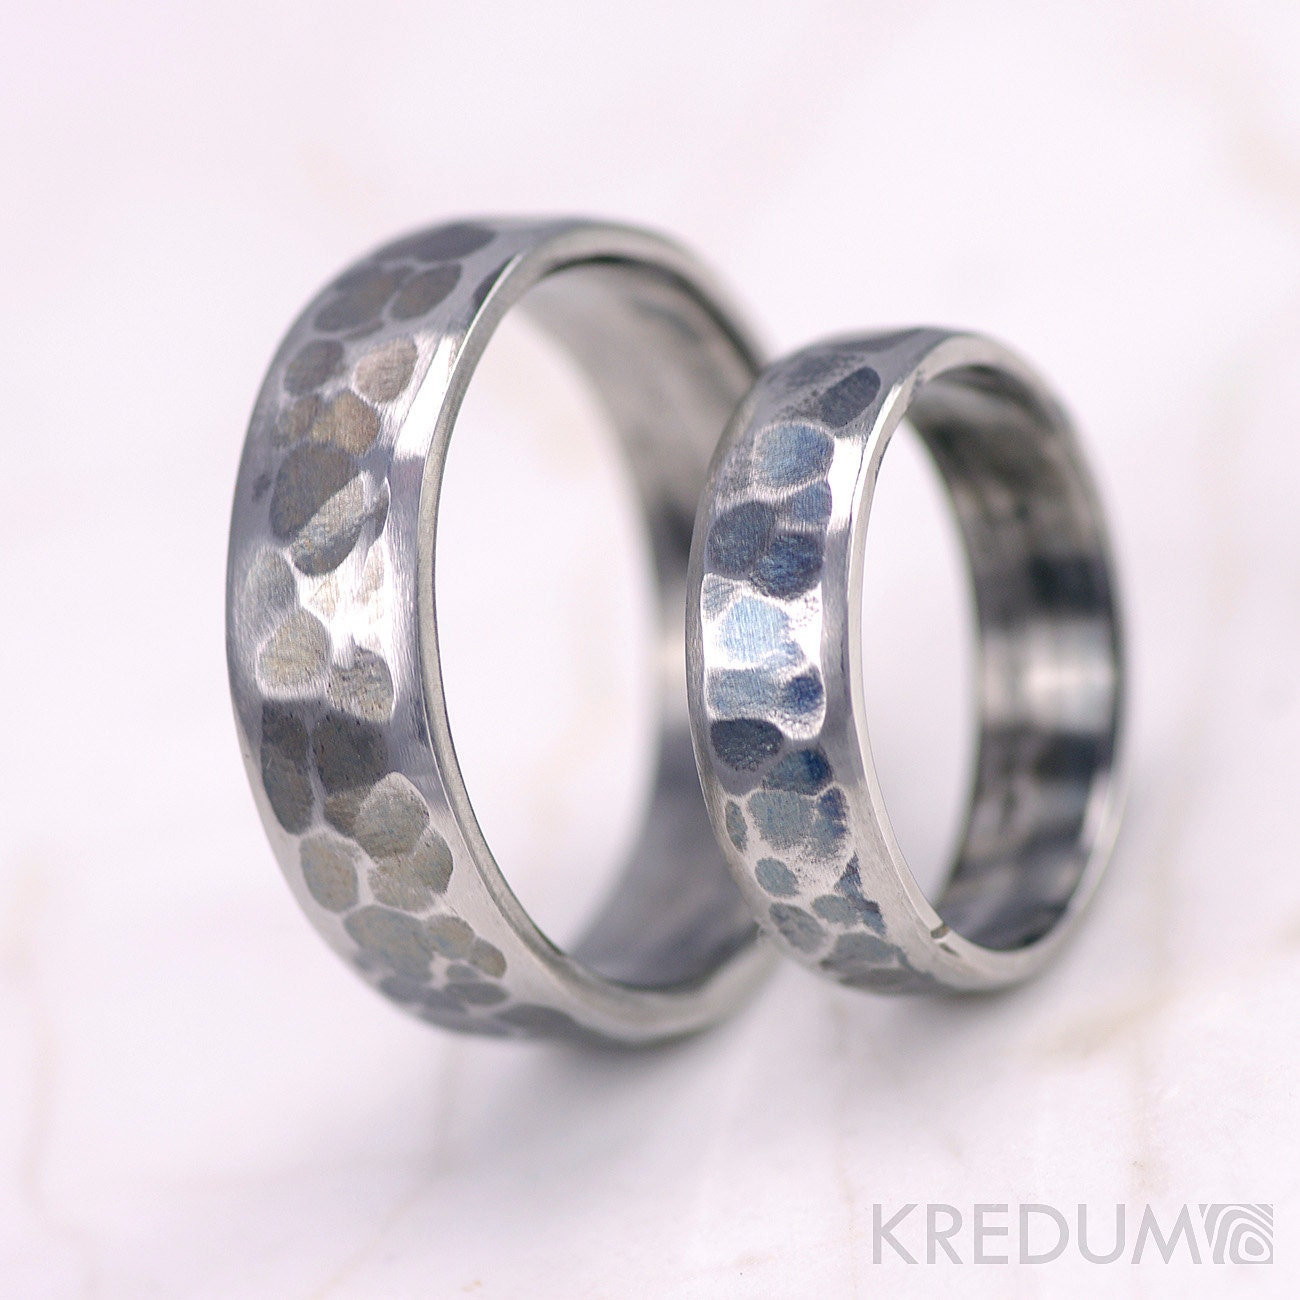 Man S Hand Bands: Unique Wedding Ring For Men And Women Hand Forged By KREDUM